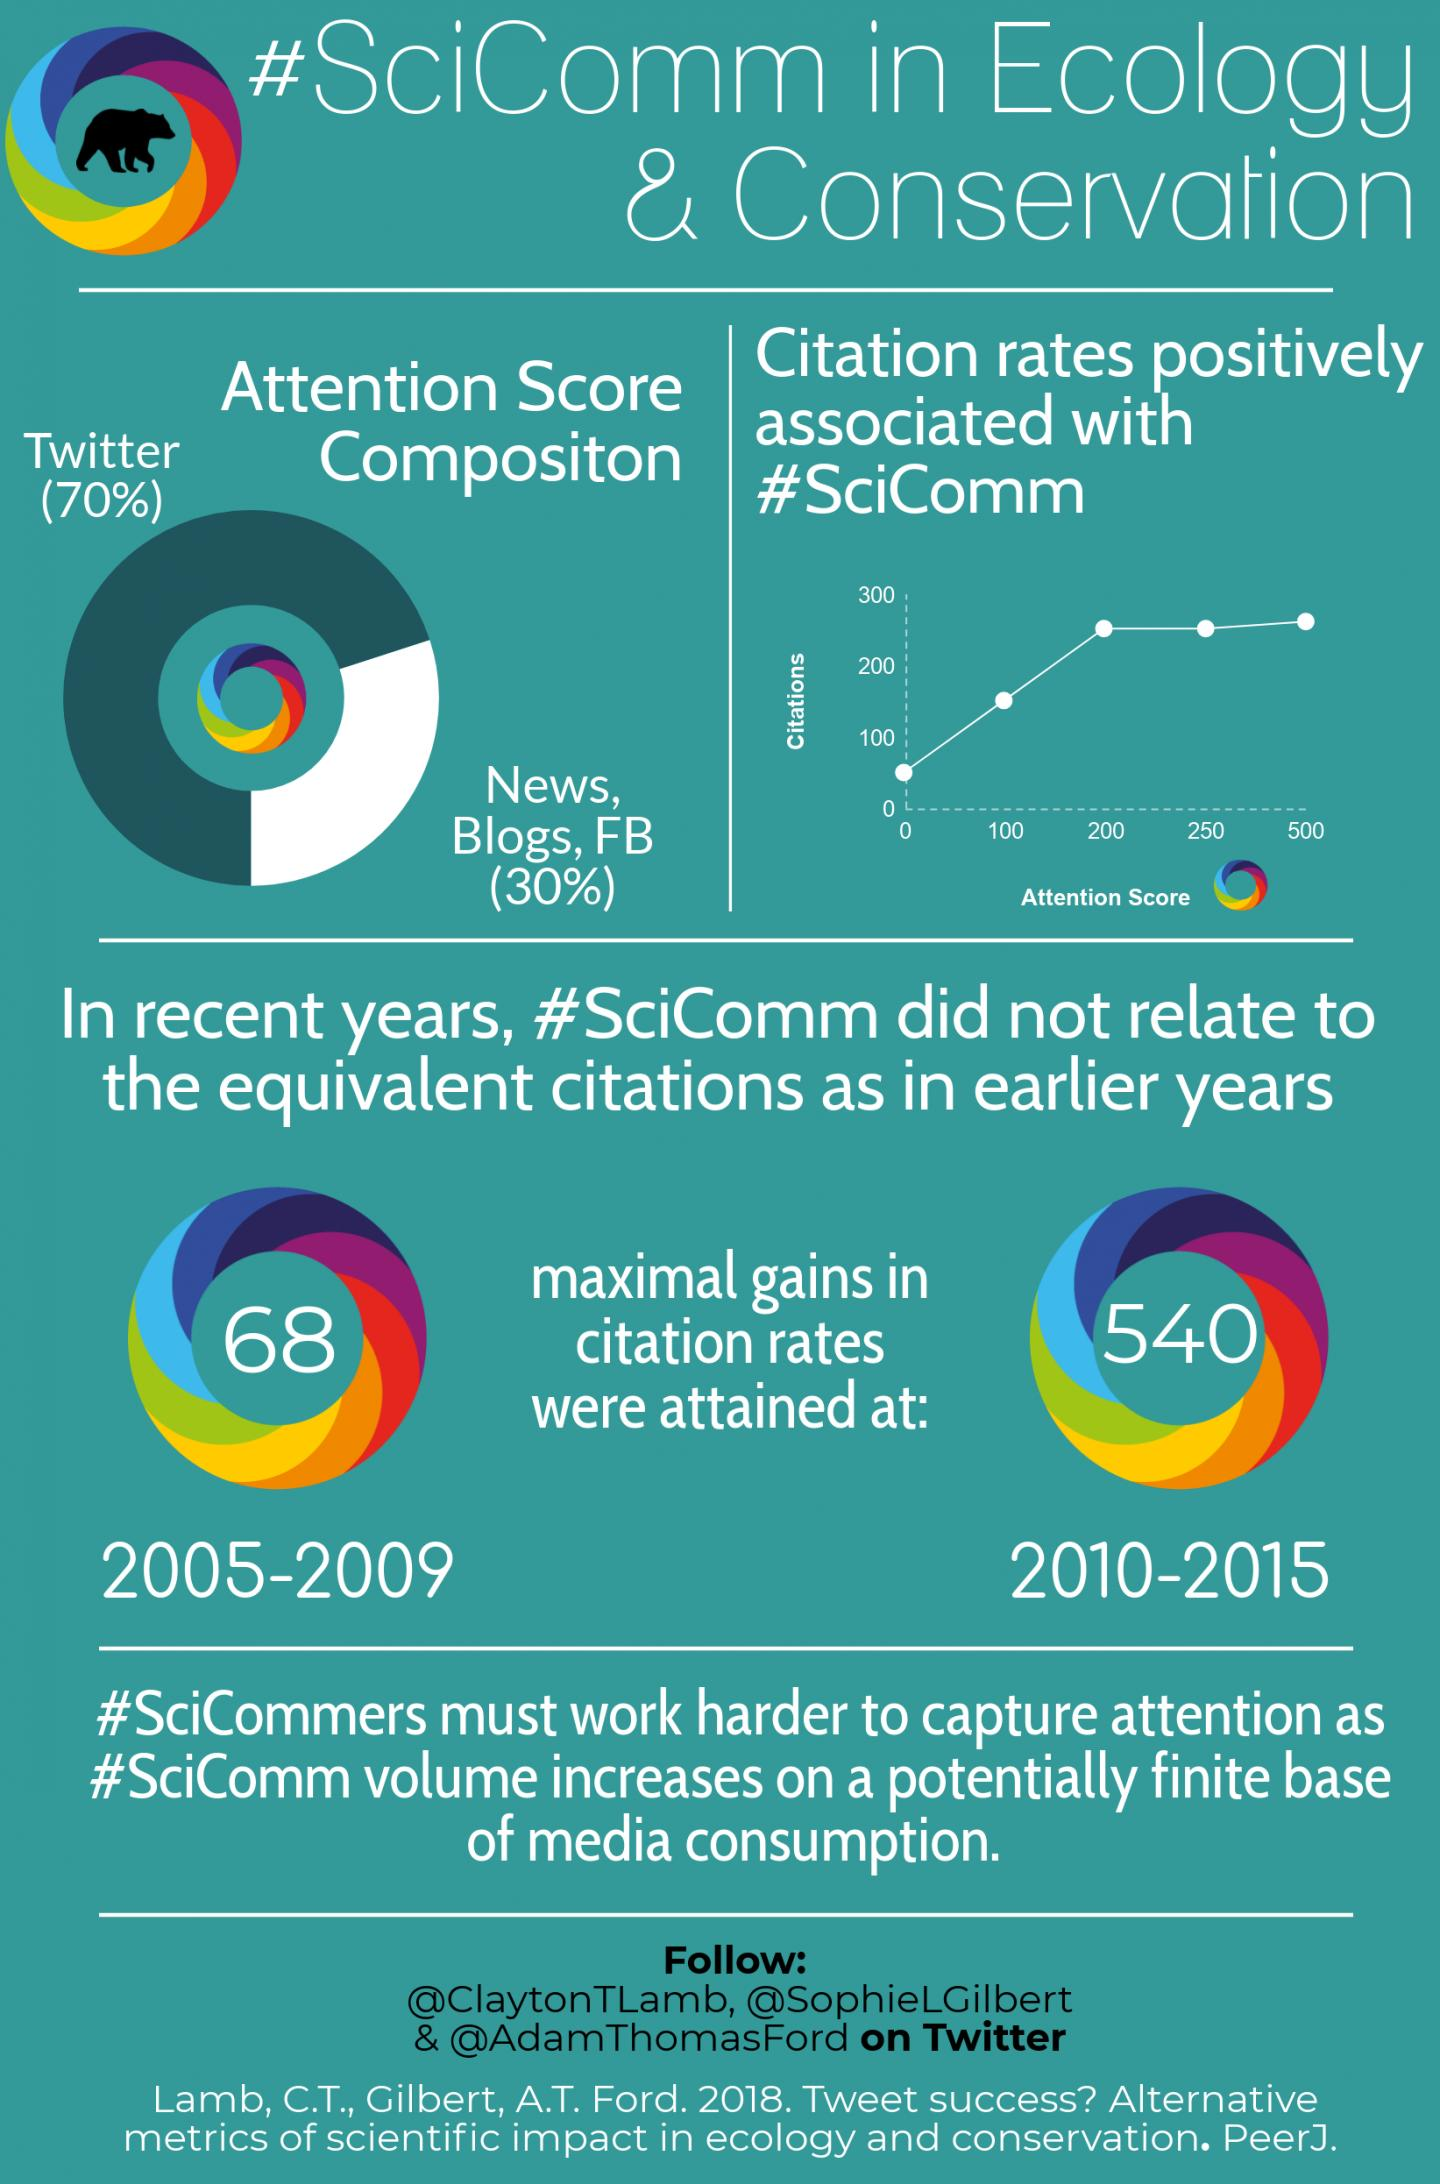 #SciComm in Ecology and Conservation